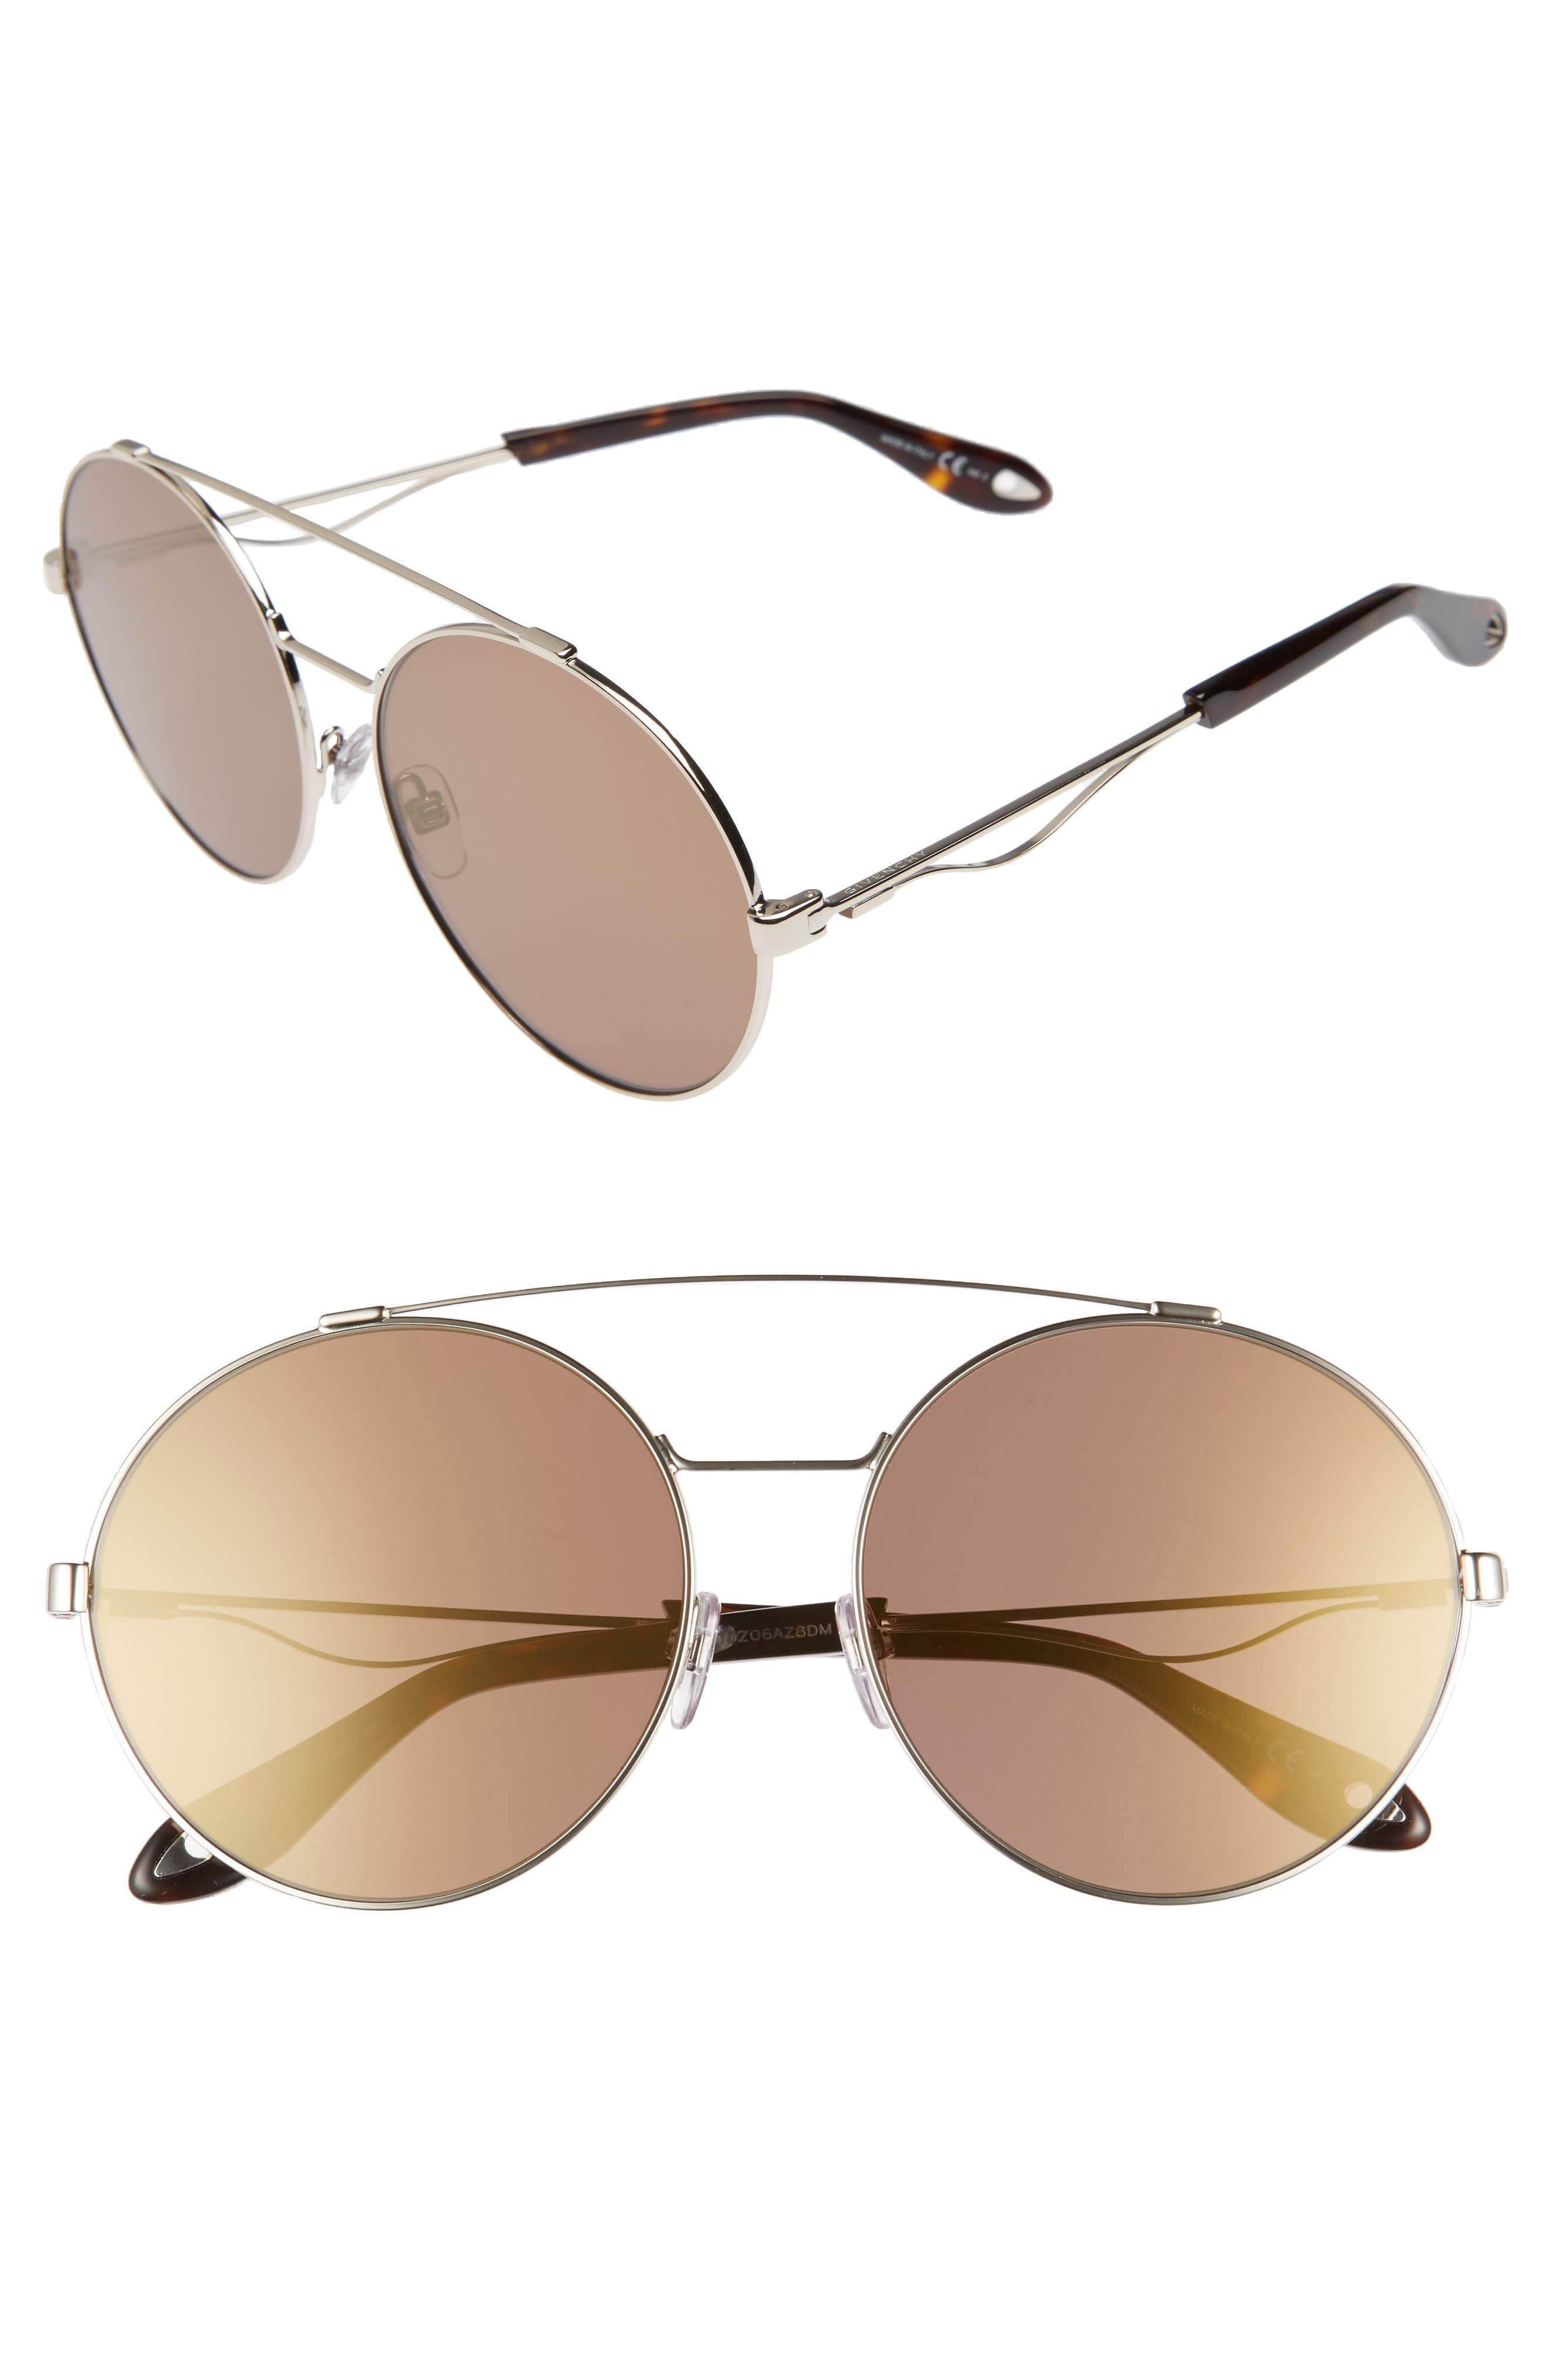 62mm Oversize Round Sunglasses,                             Main thumbnail 1, color,                             Light Gold